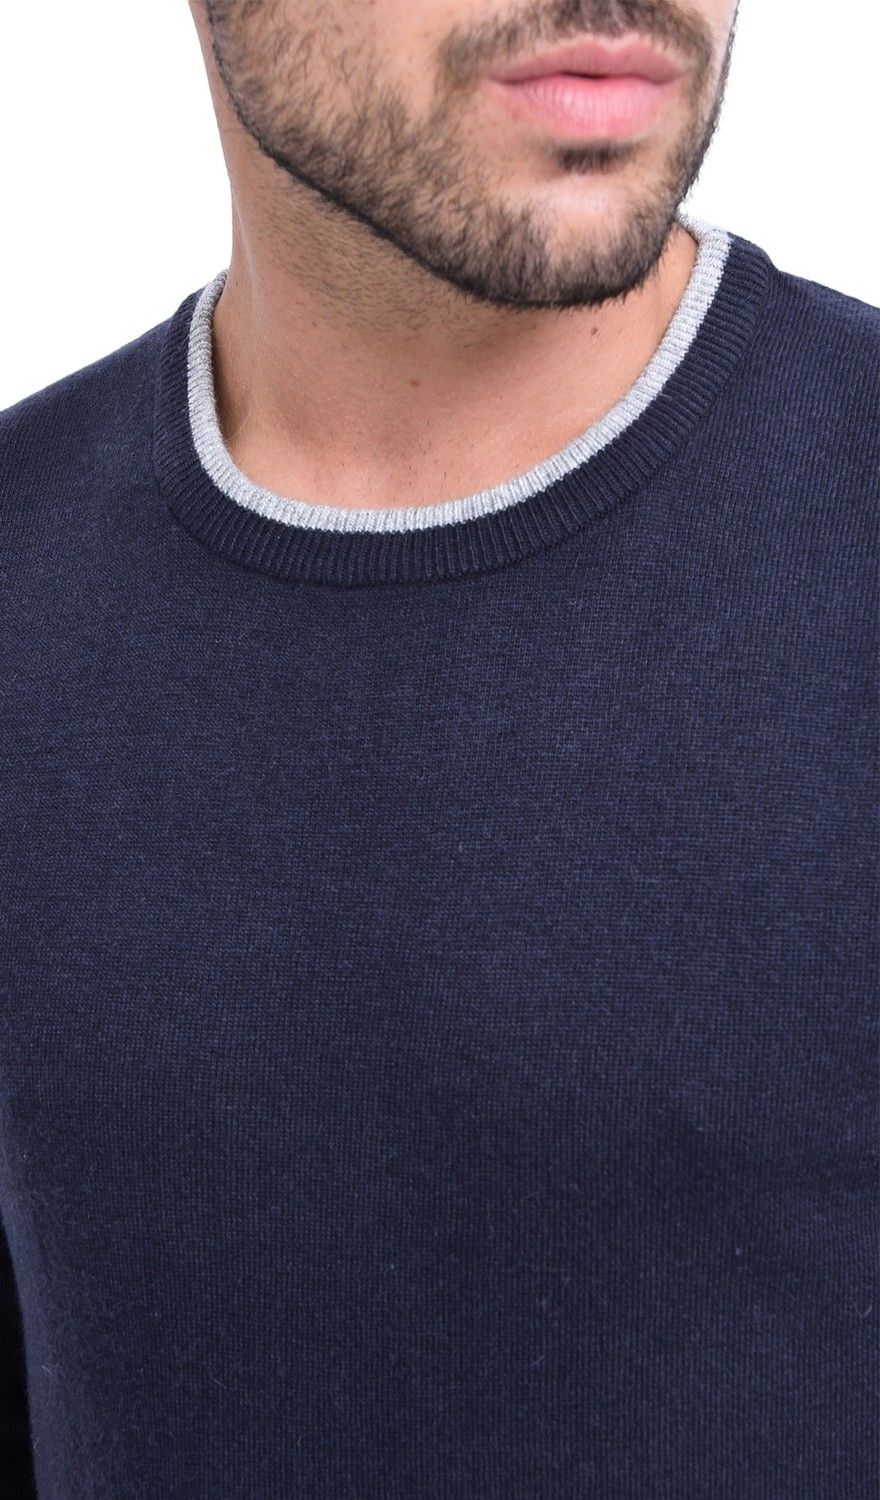 C&JO Round Neck Two-tone Sweater in Navy